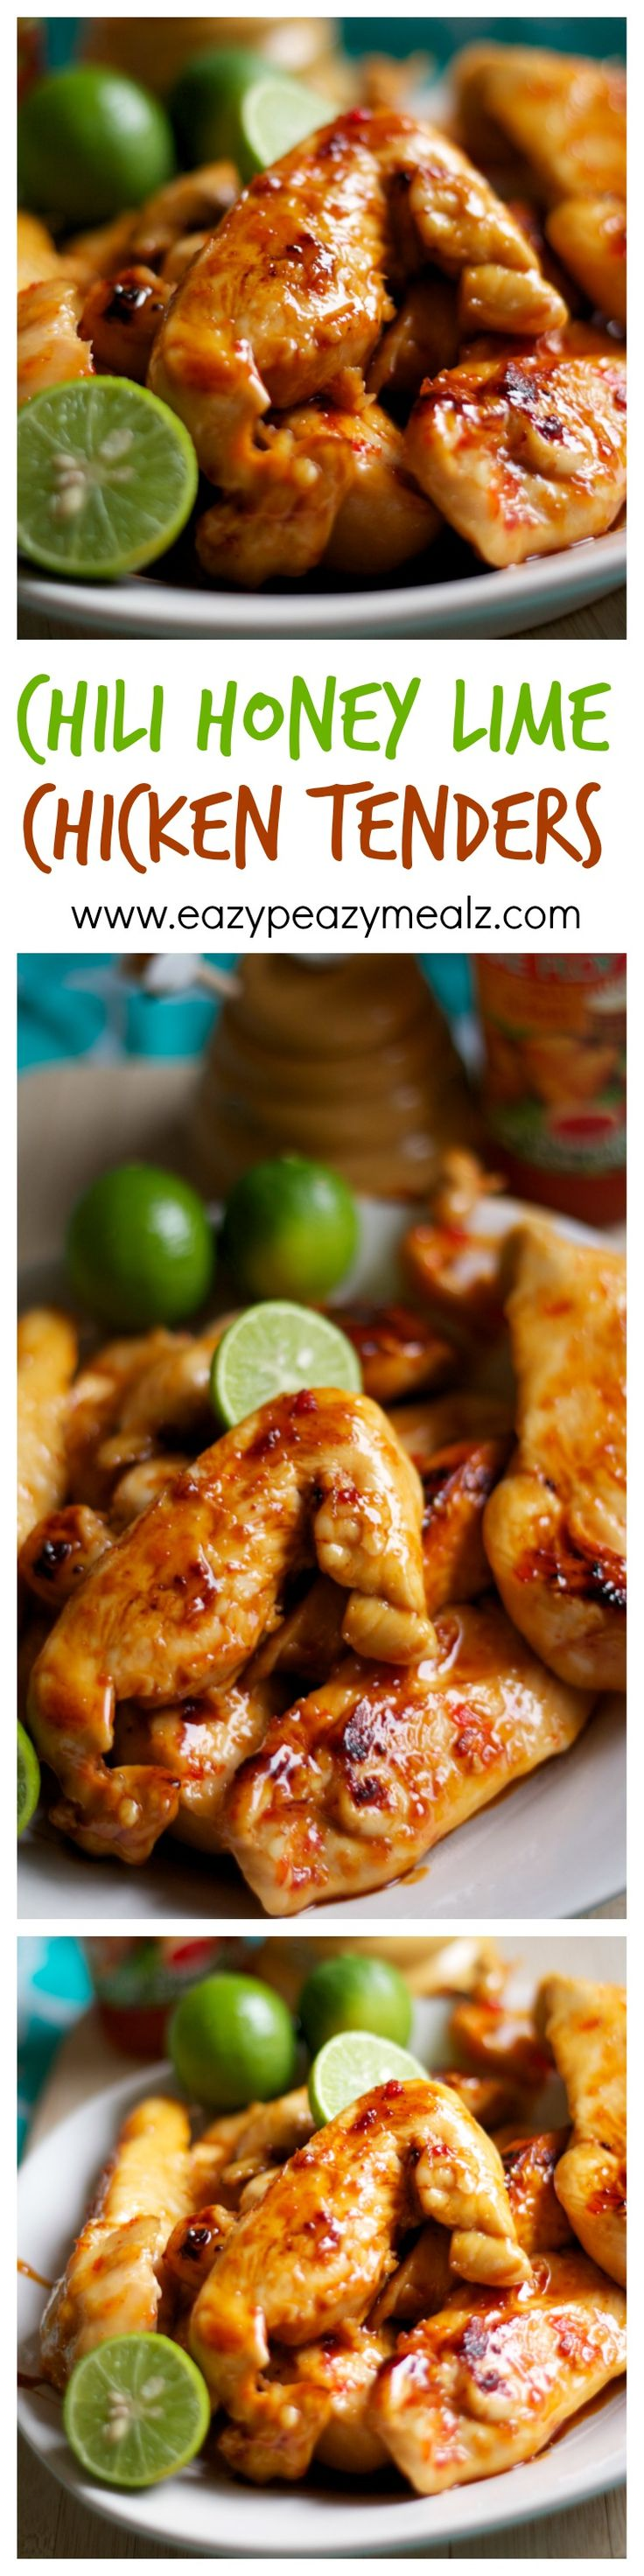 Eazy Peazy Meals- Just a few simple ingredients and you get this! Perfect way to use chicken for weeknight meals! And great as leftovers. - Eazy Peazy Mealz